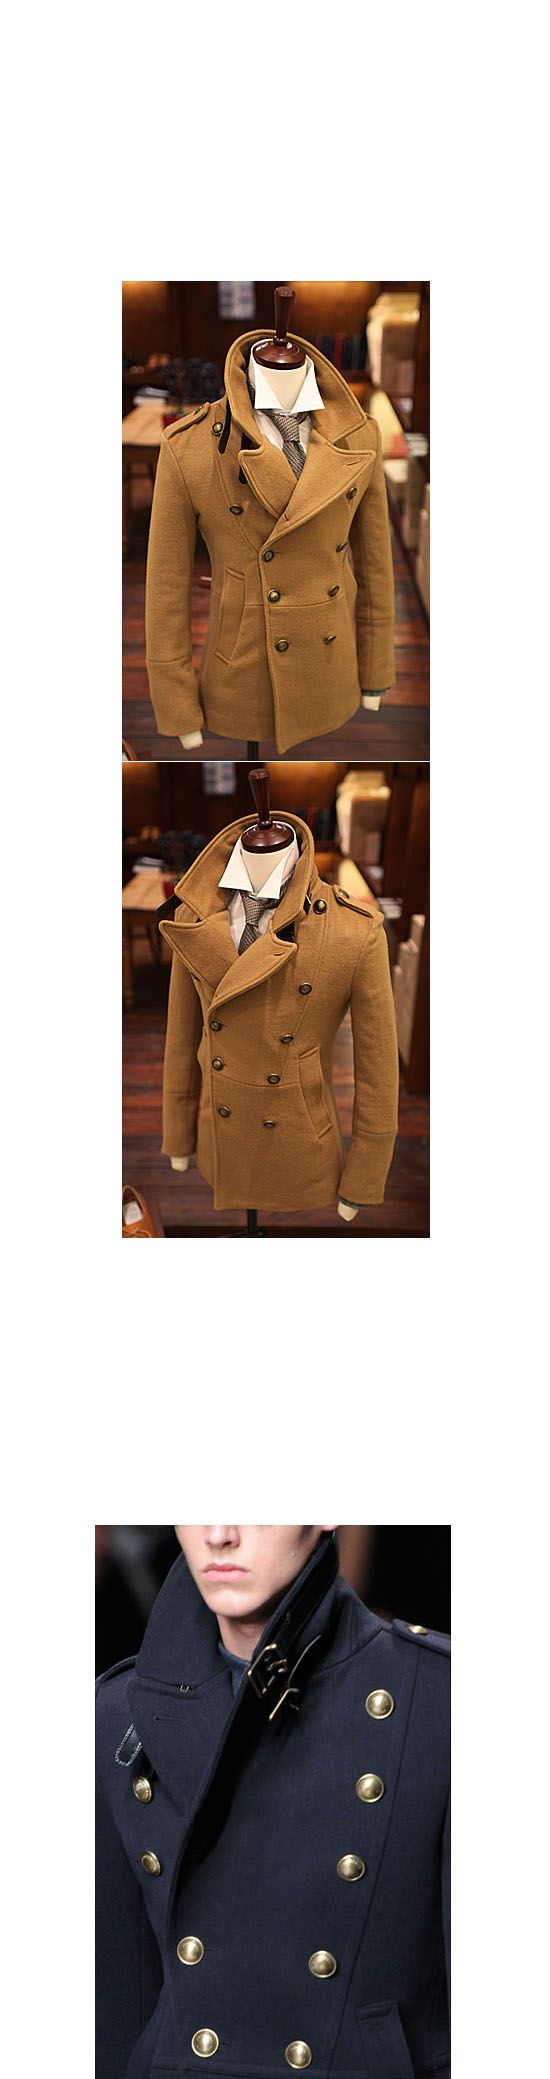 Outerwear :: Slim Fit Highneck Beige Peacoat-Coat 05 - Mens Fashion Clothing For An Attractive Guy Look